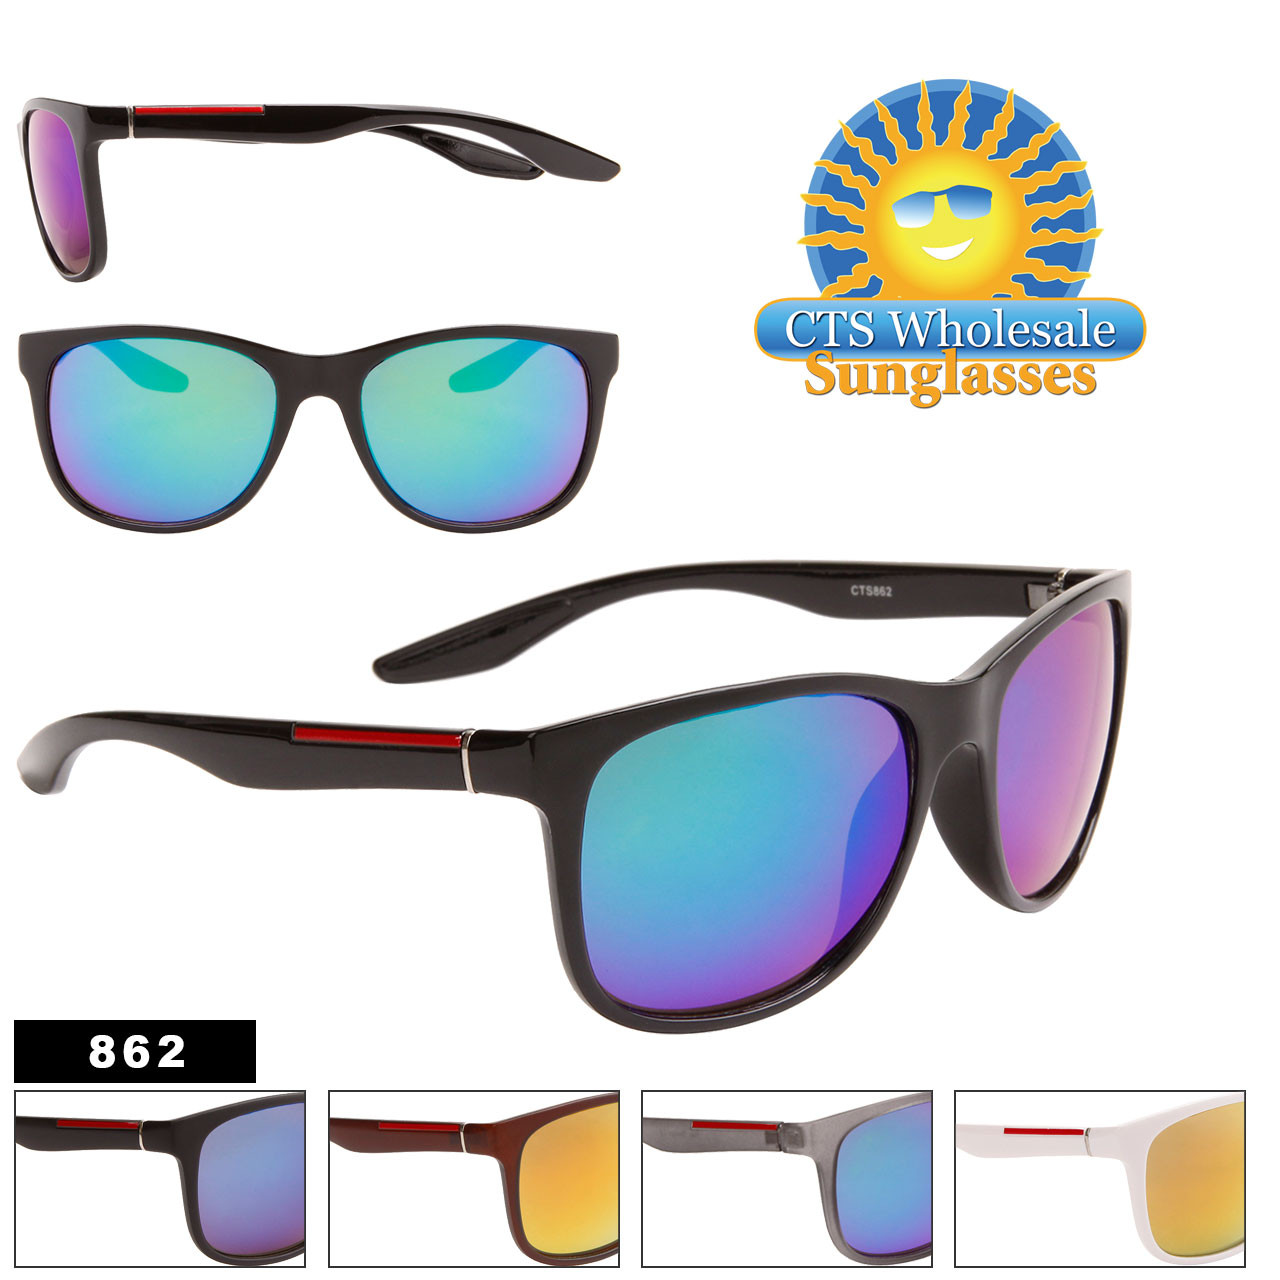 Mirrored Unisex Wholesale Sunglasses - Style #862